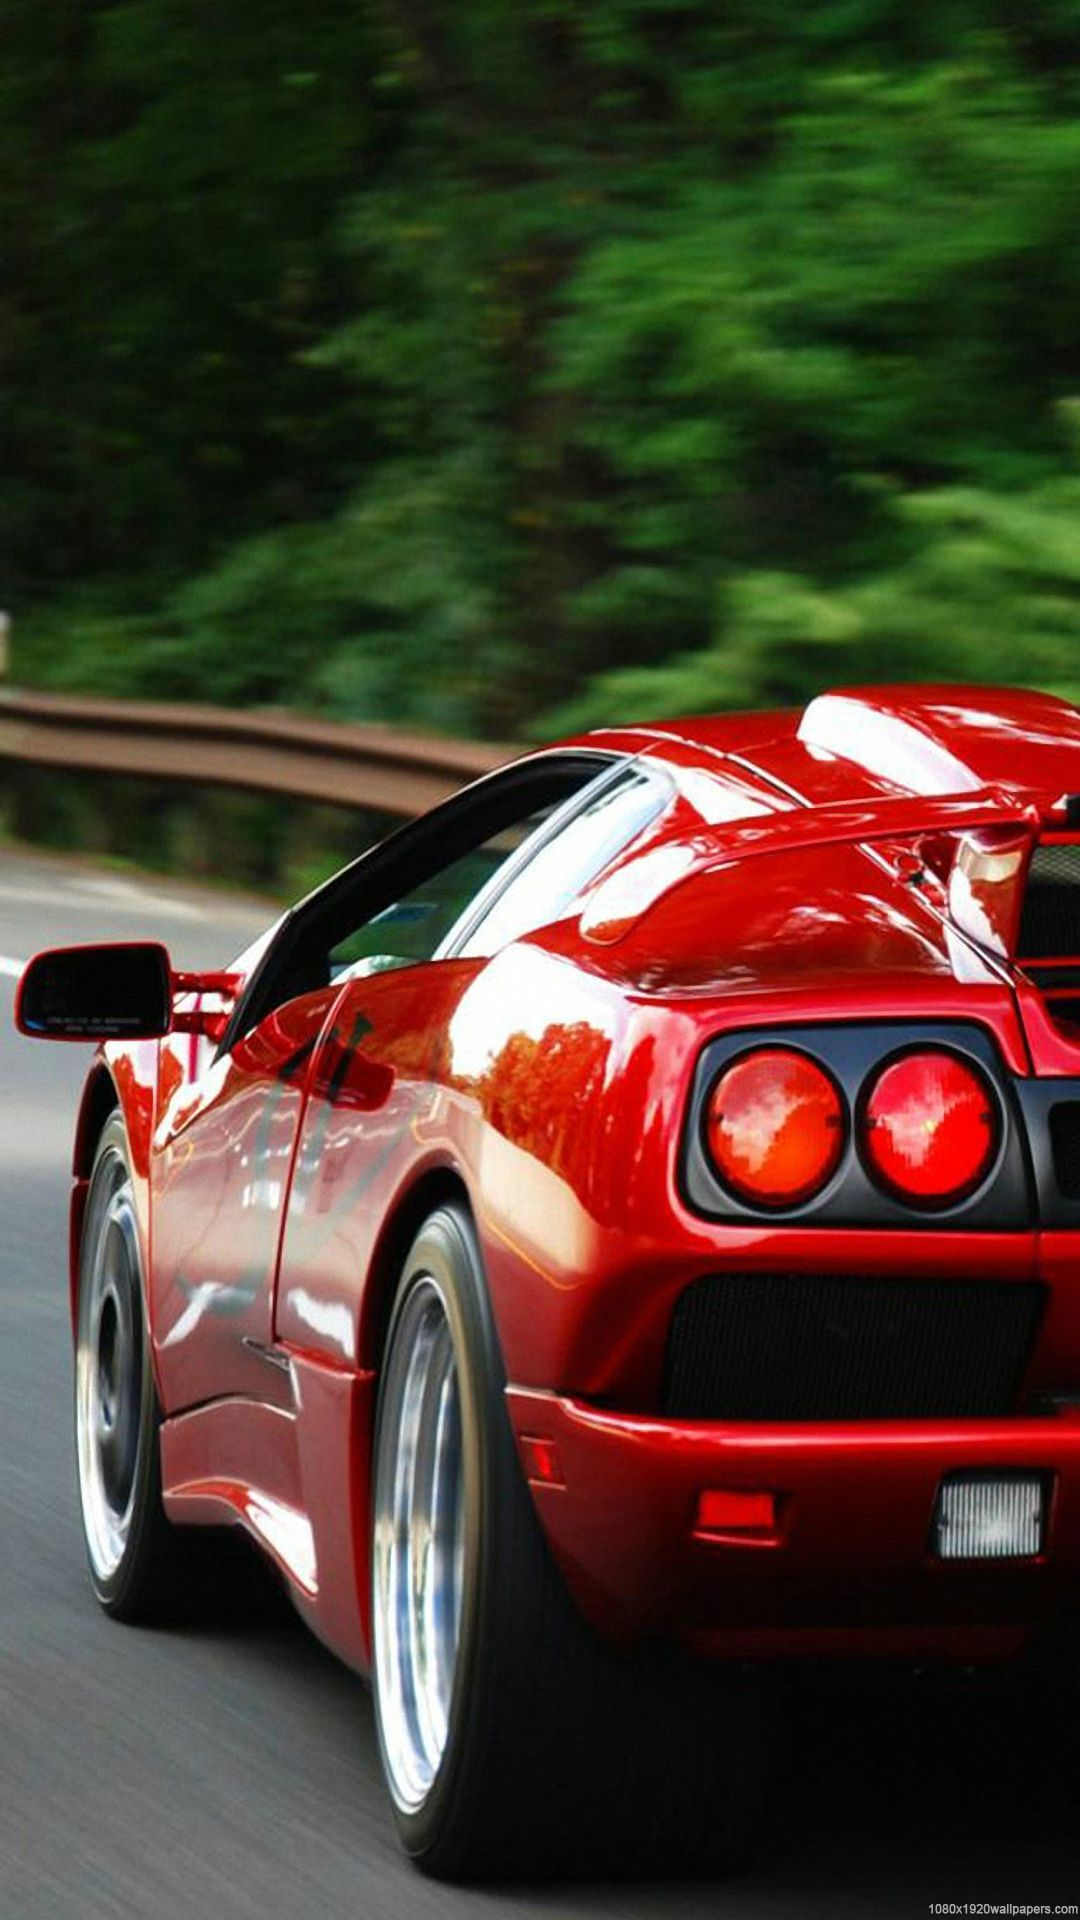 Give your home a bold look this year! Full Hd Desktop Wallpaper Cars